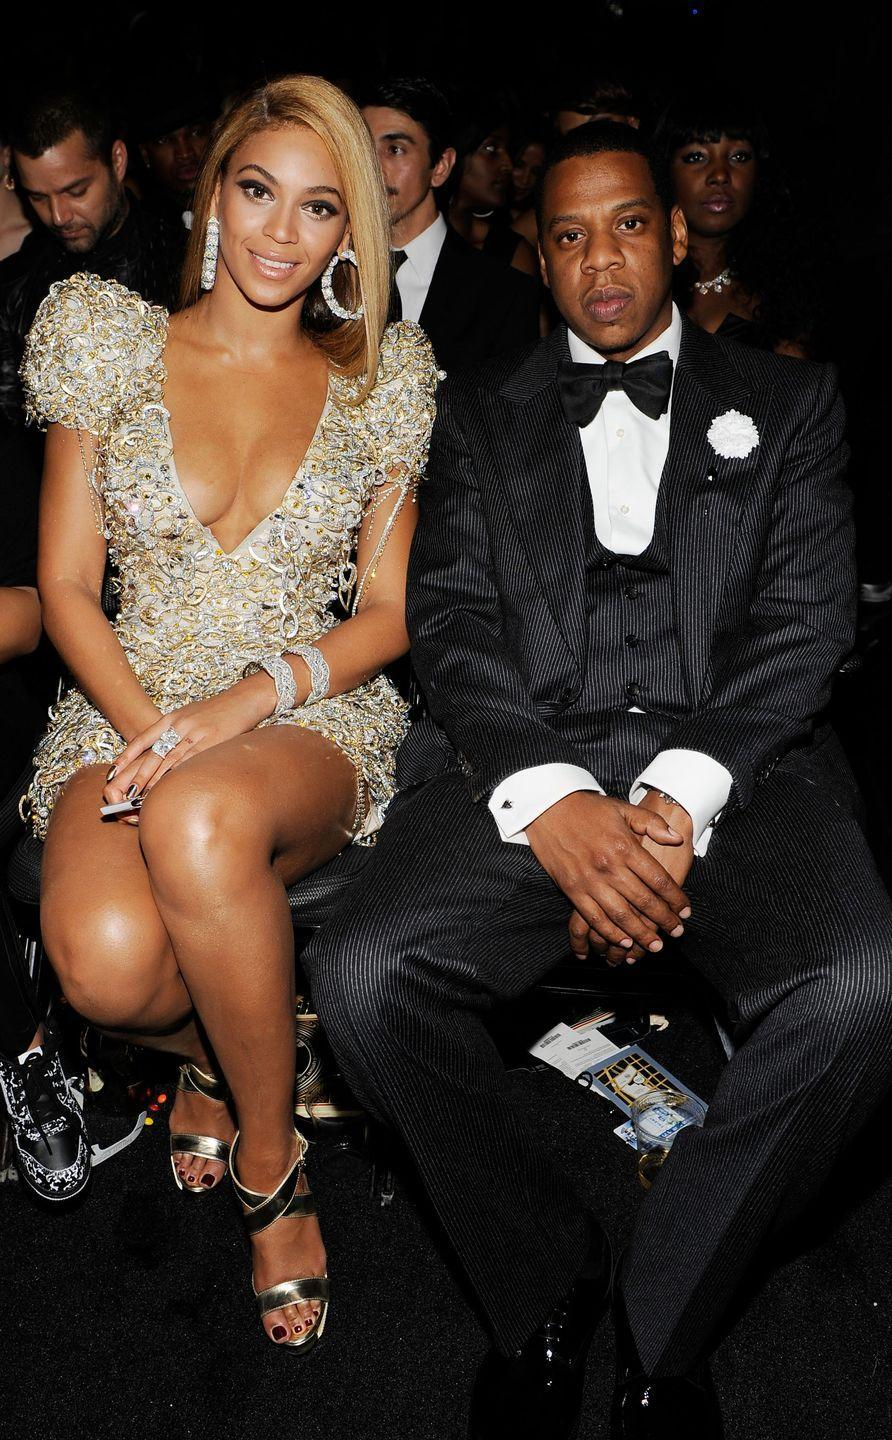 """<p>The power couple - who are <a href=""""https://www.forbes.com/sites/zackomalleygreenburg/2019/06/04/jay-z-and-beyonc-now-have-a-combined-14-billion-net-worth/"""" rel=""""nofollow noopener"""" target=""""_blank"""" data-ylk=""""slk:estimated to be worth $1.4 billion"""" class=""""link rapid-noclick-resp"""">estimated to be worth $1.4 billion </a>- started dating in 2002 and married in a secret ceremony in 2008 choosing not to confirm their relationship or marriage for years. The couple have three children together, Blue Ivy and <a href=""""https://www.elle.com/uk/life-and-culture/culture/a22556538/beyonce-pictures-twins-rumi-sir-carter/"""" rel=""""nofollow noopener"""" target=""""_blank"""" data-ylk=""""slk:twins Sir and Rumi."""" class=""""link rapid-noclick-resp"""">twins Sir and Rumi.</a></p>"""